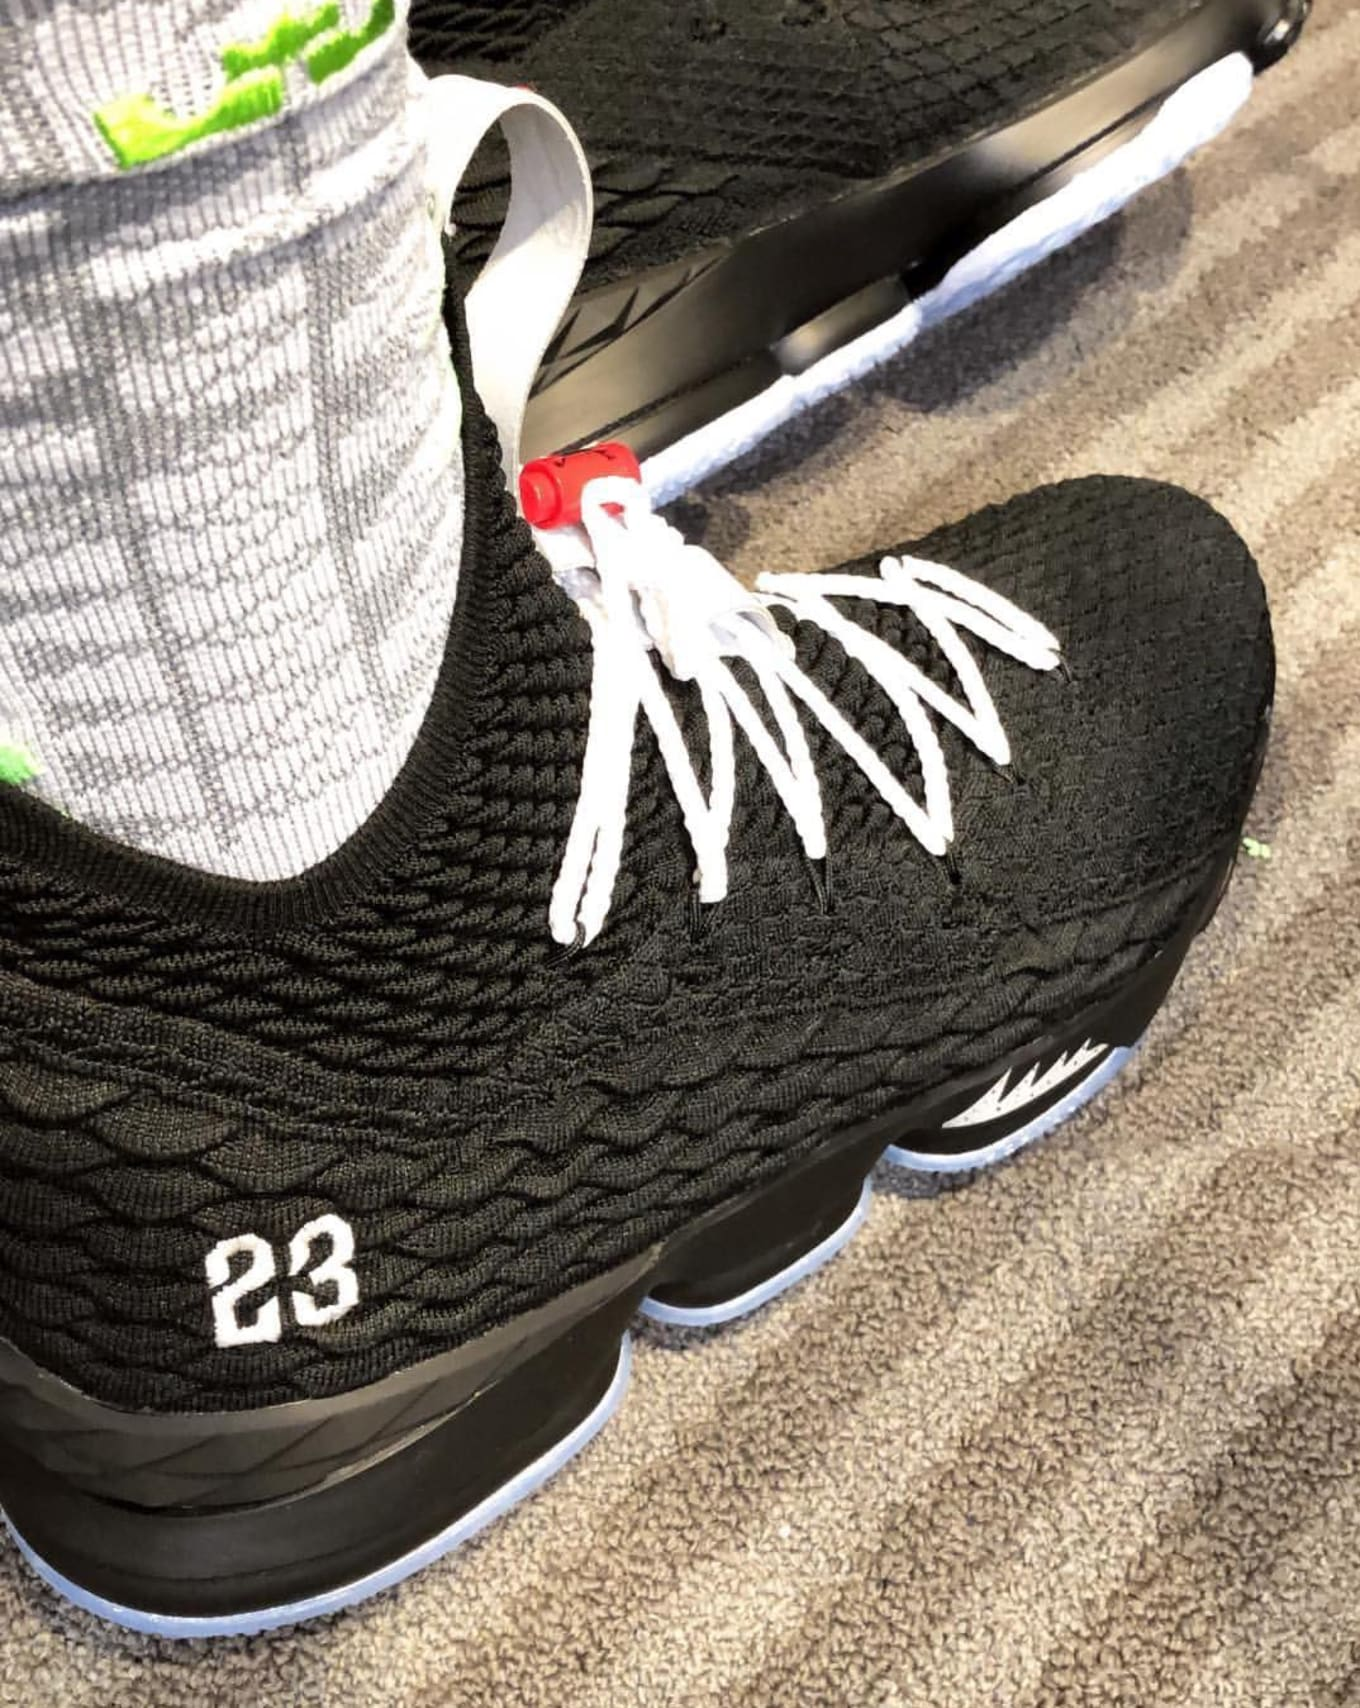 bd24b6f2d7461 LeBron James Pays Tribute to Michael Jordan with Special Sneakers